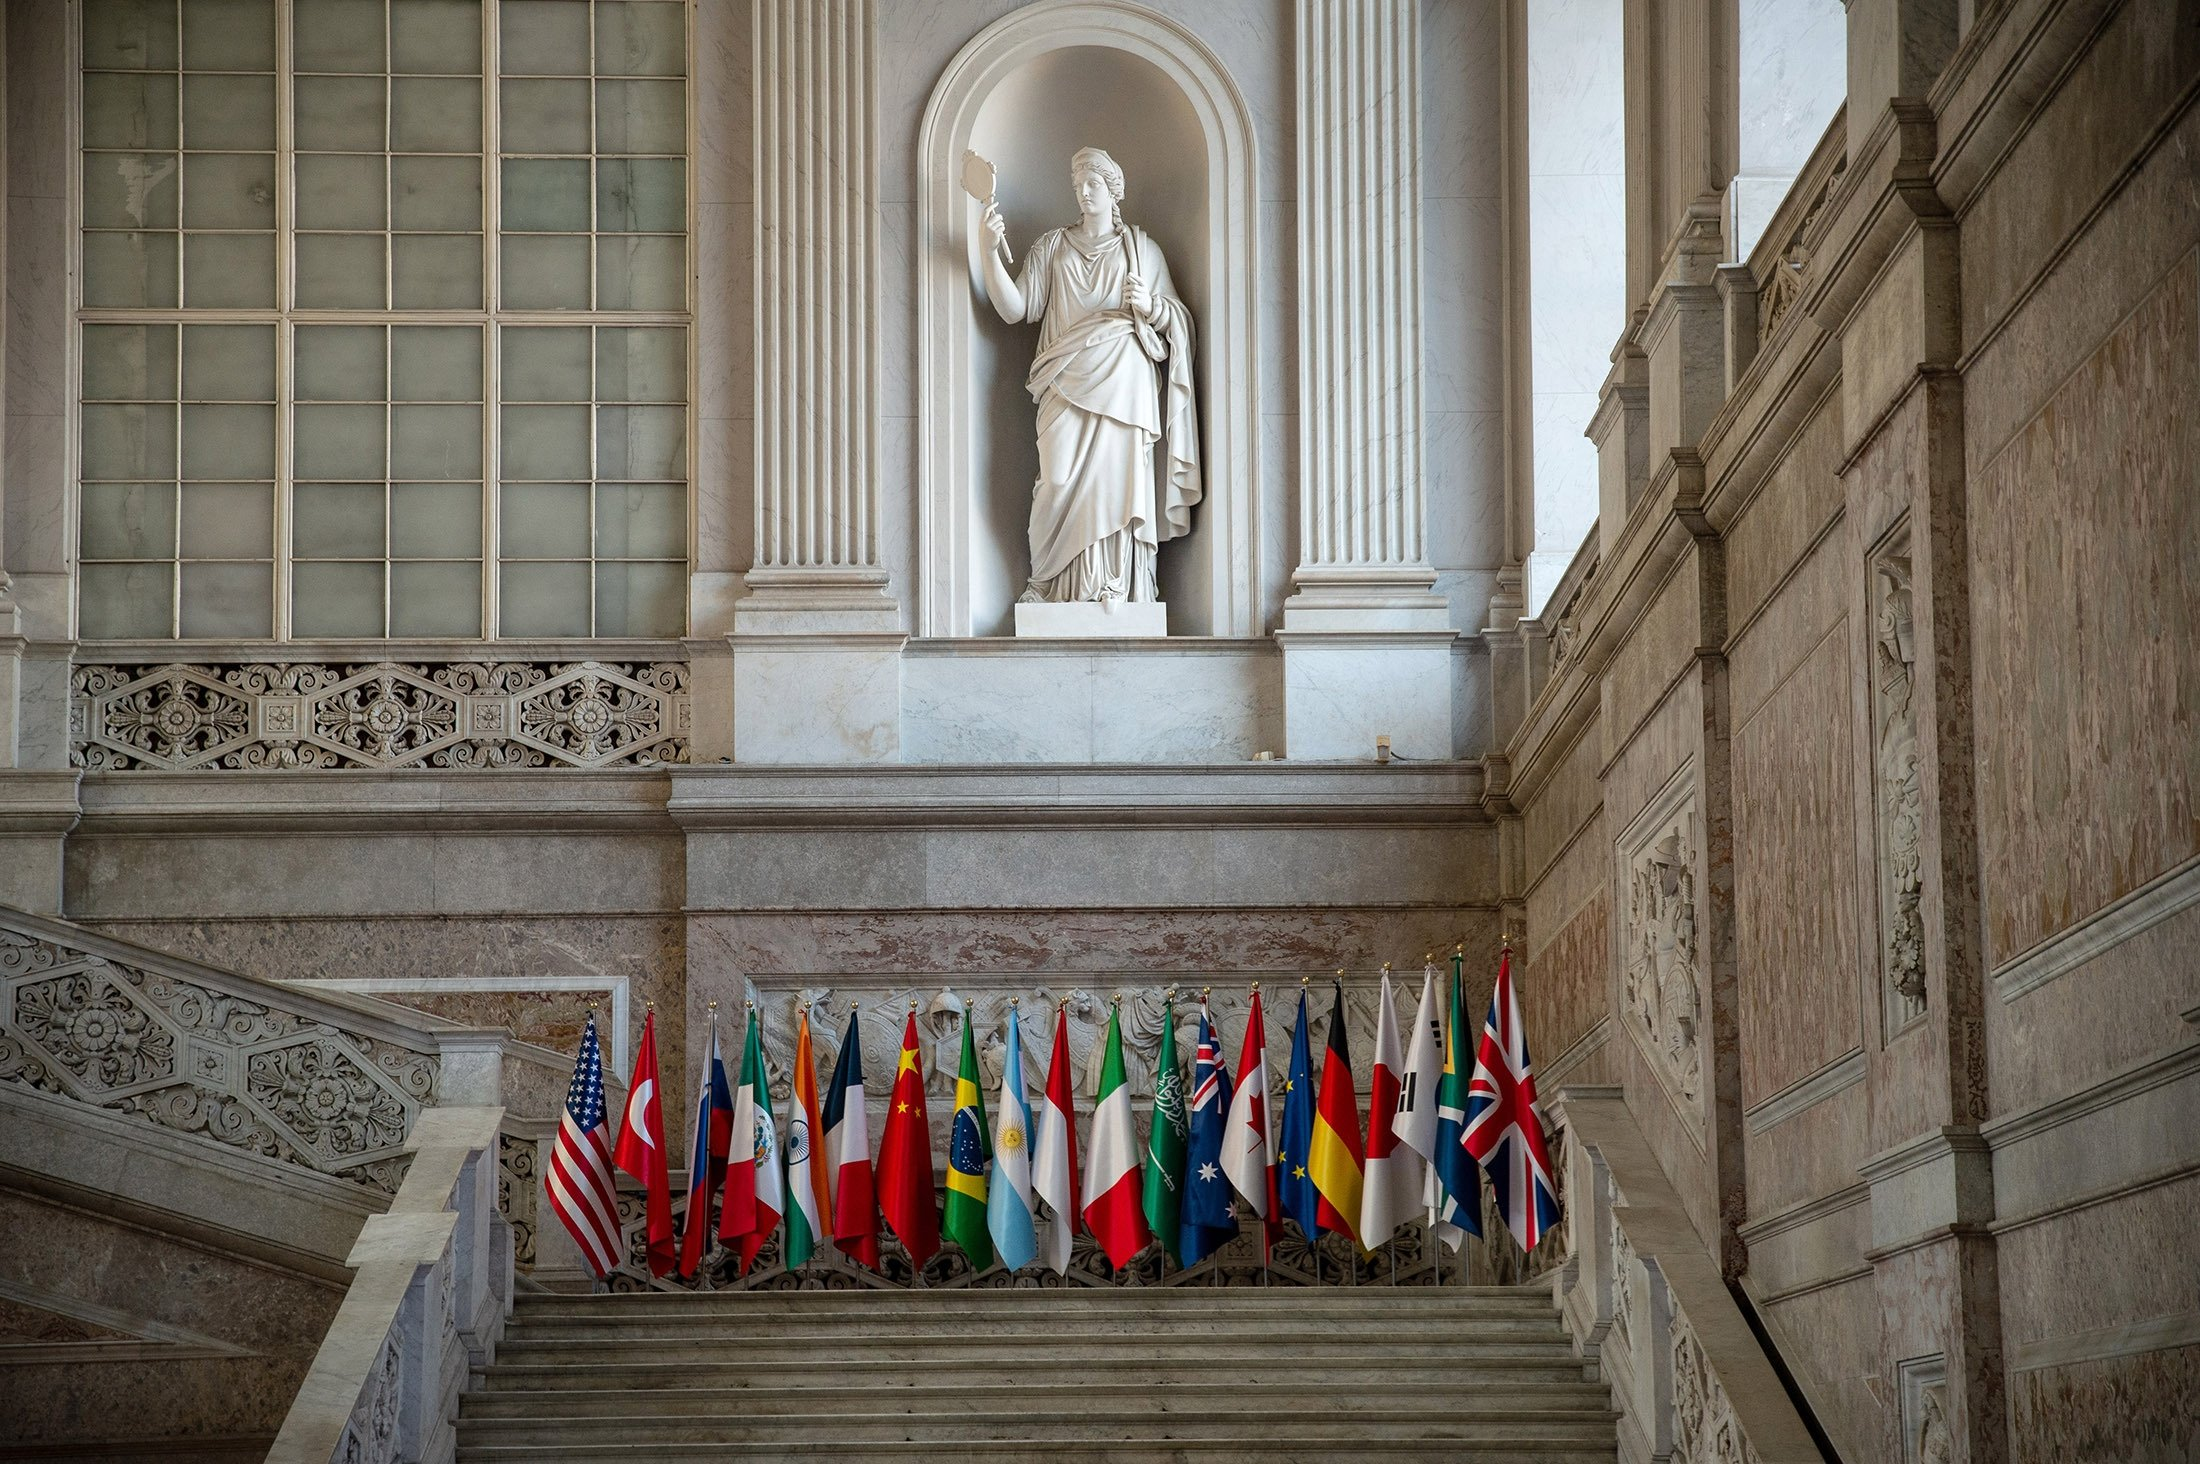 A general view of the reception area of Palazzo Reale during the first day of the G-20 meeting in Naples, Italy, July 22, 2021. (Getty Images Photo)